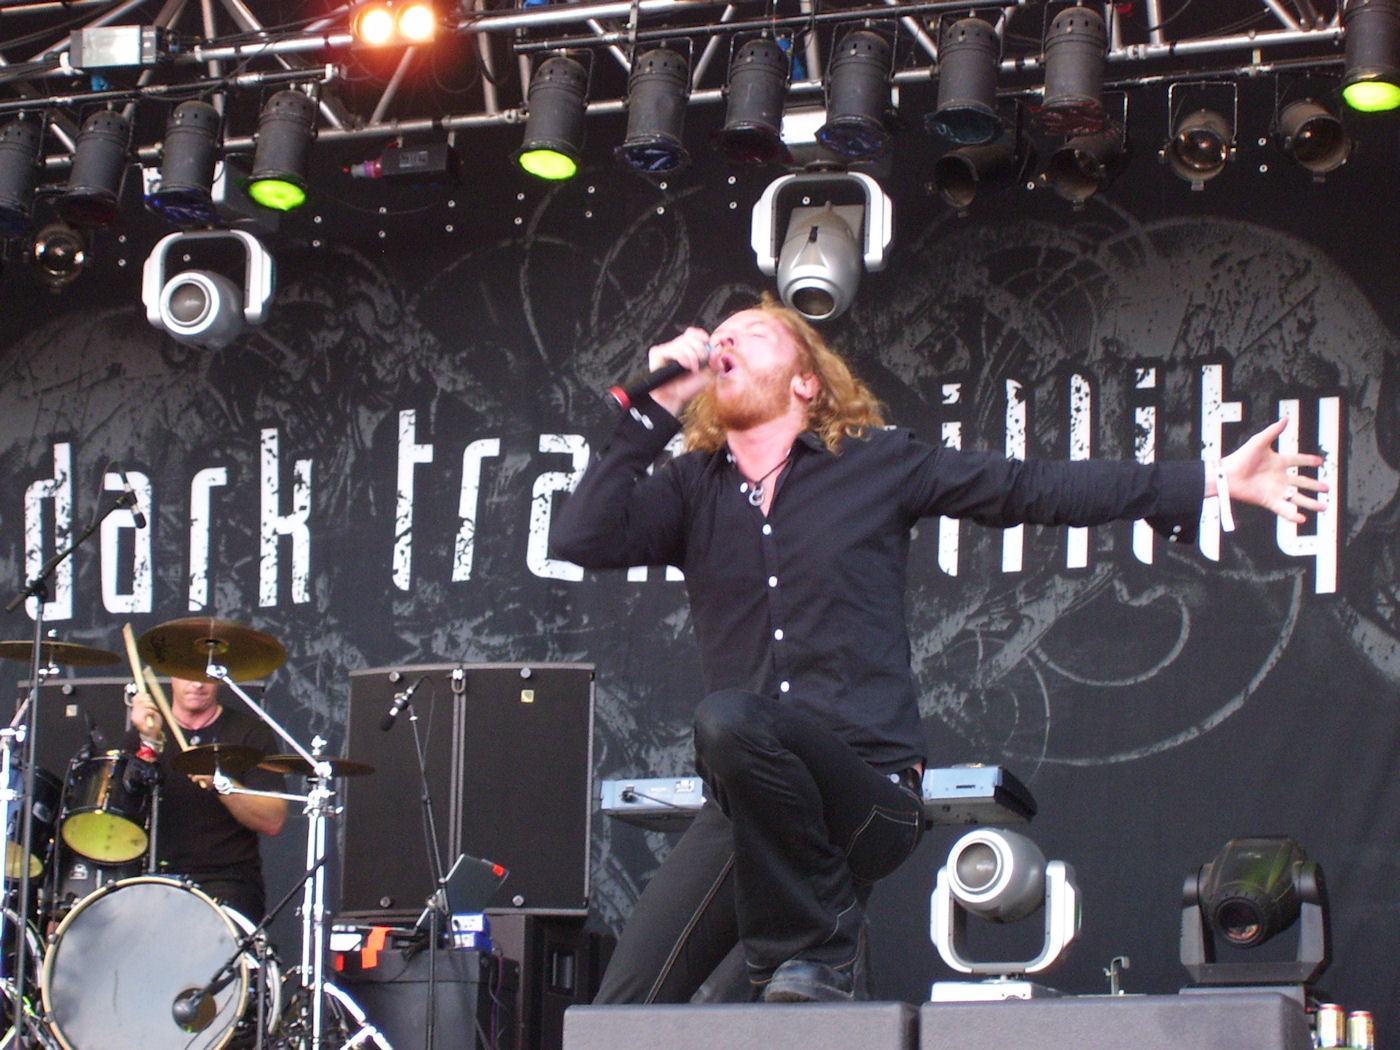 Dark Tranquility at Metaltown 2008